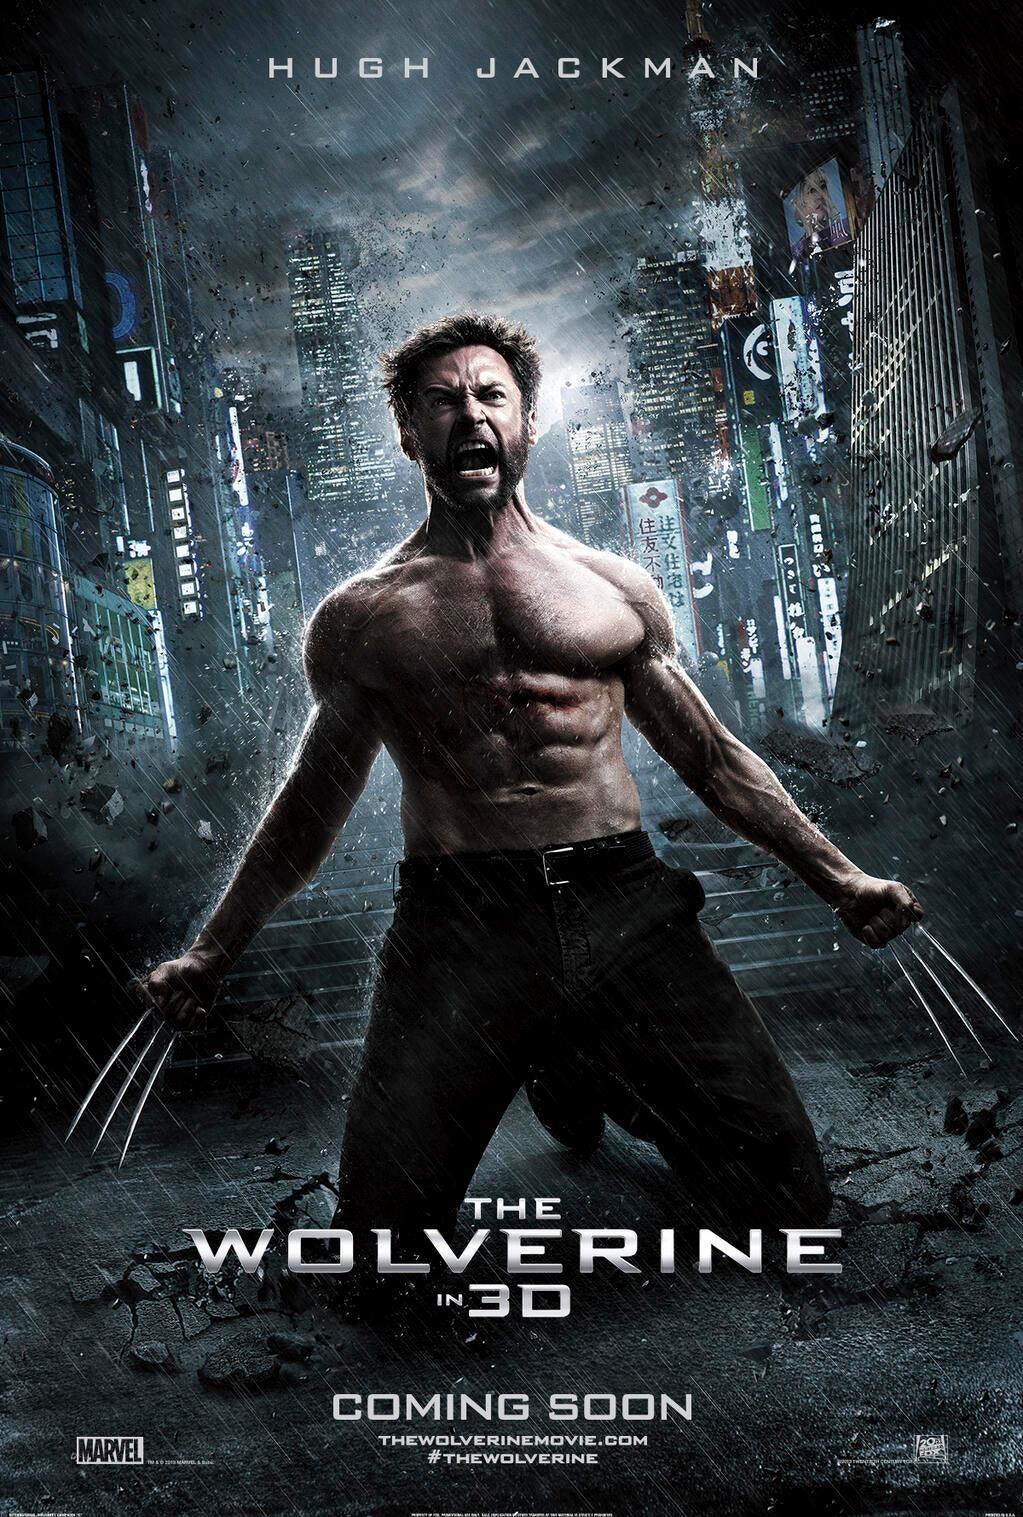 https://i0.wp.com/comicbook.com/wp-content/uploads/2013/03/the-wolverine-poster.jpg